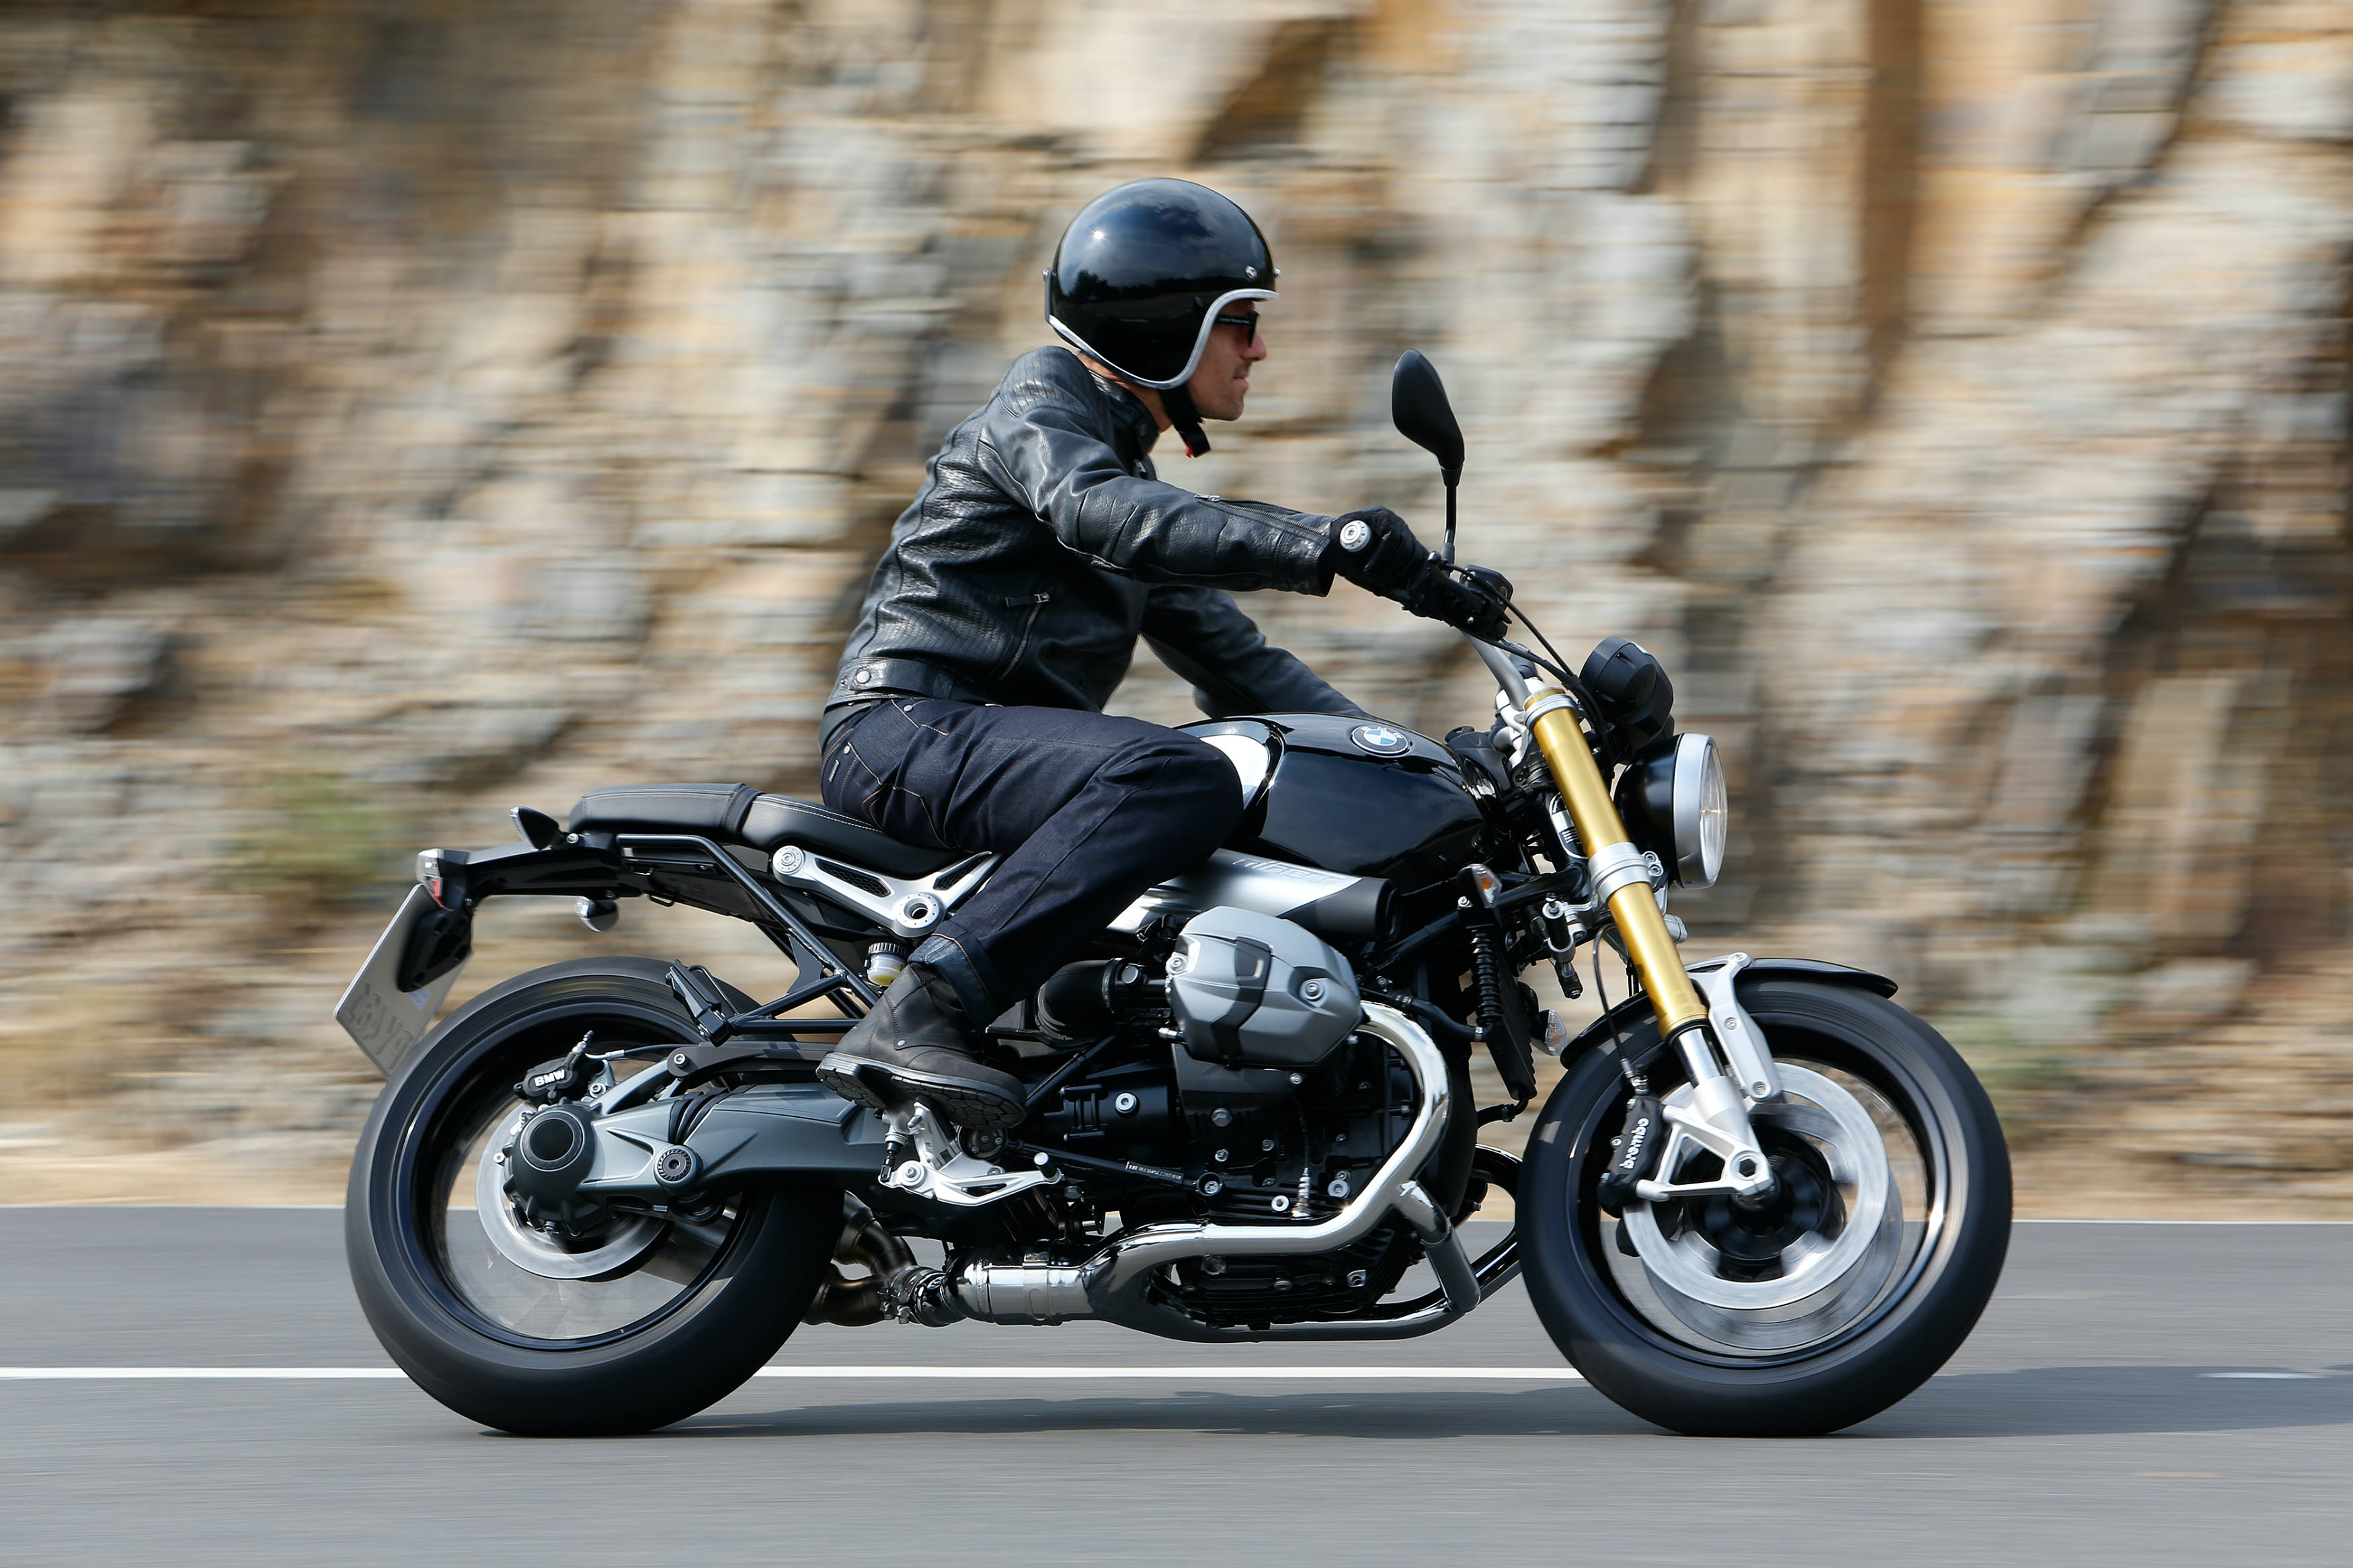 BMW  R NINET being ridden on a hill road